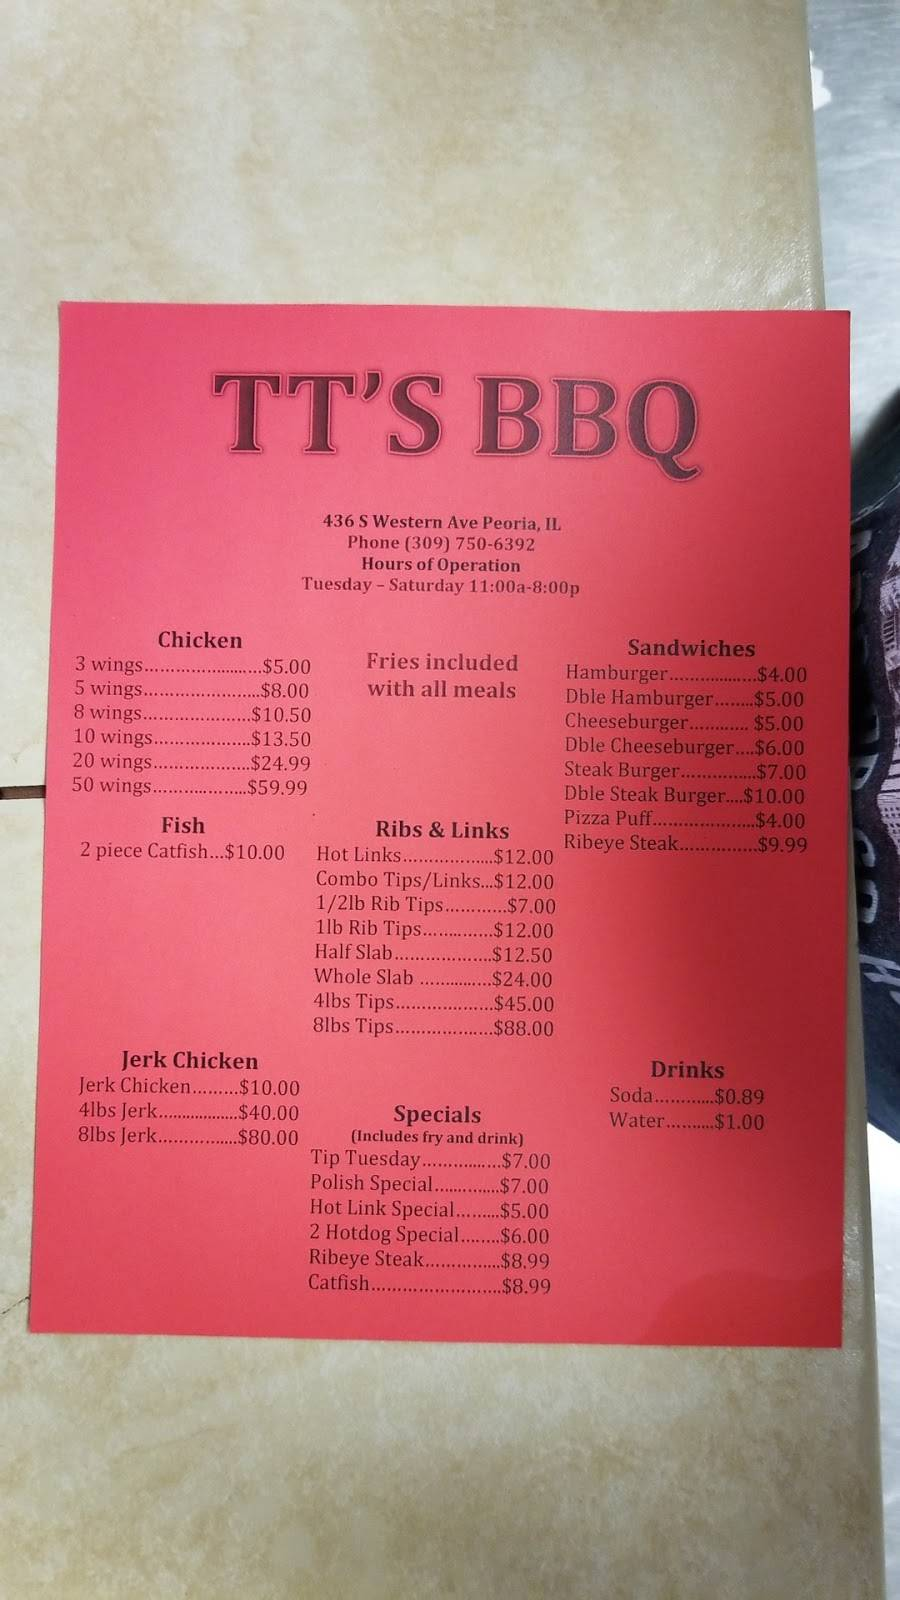 T Ts Barbecue | restaurant | 436 South Western Avenue, Peoria, IL 61605, USA | 3097506392 OR +1 309-750-6392